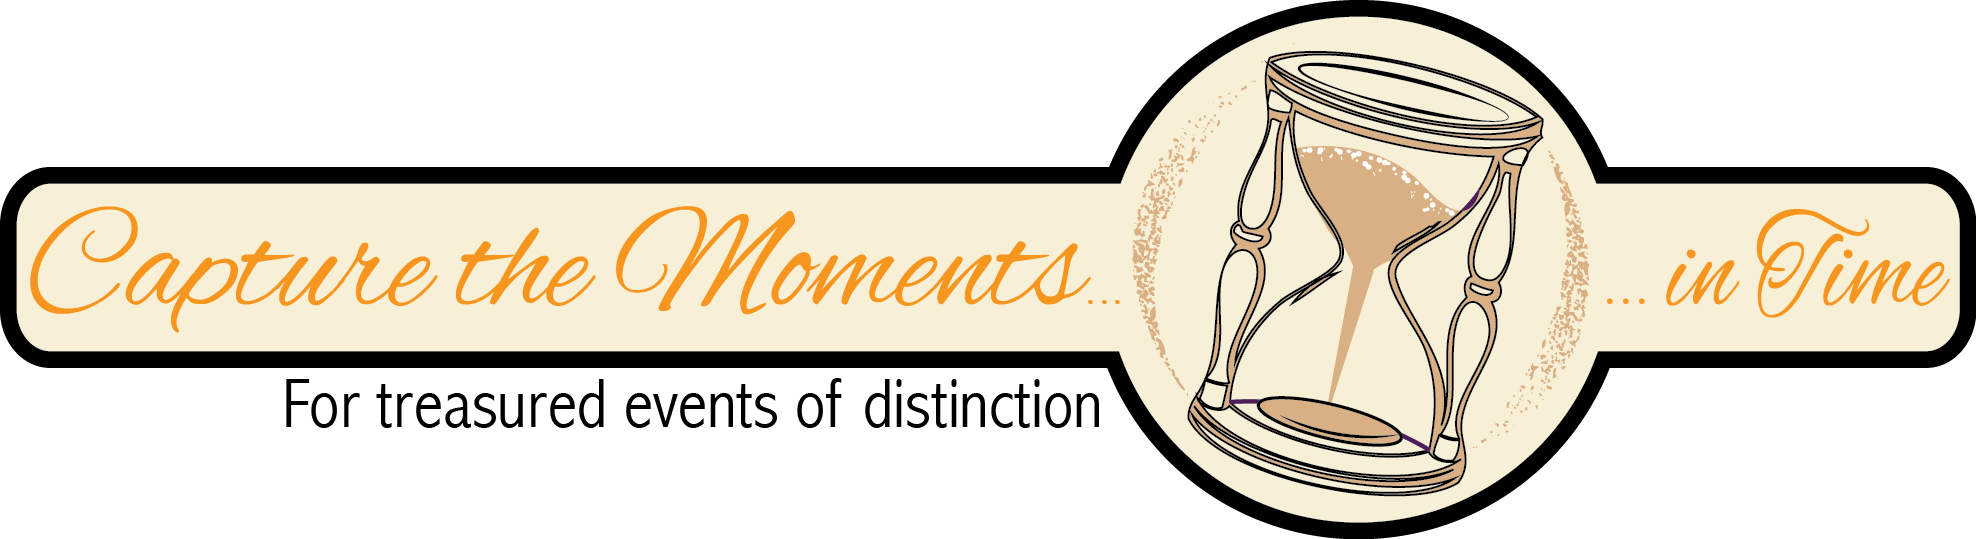 Capture the moments birthdays. Funeral clipart homegoing celebration